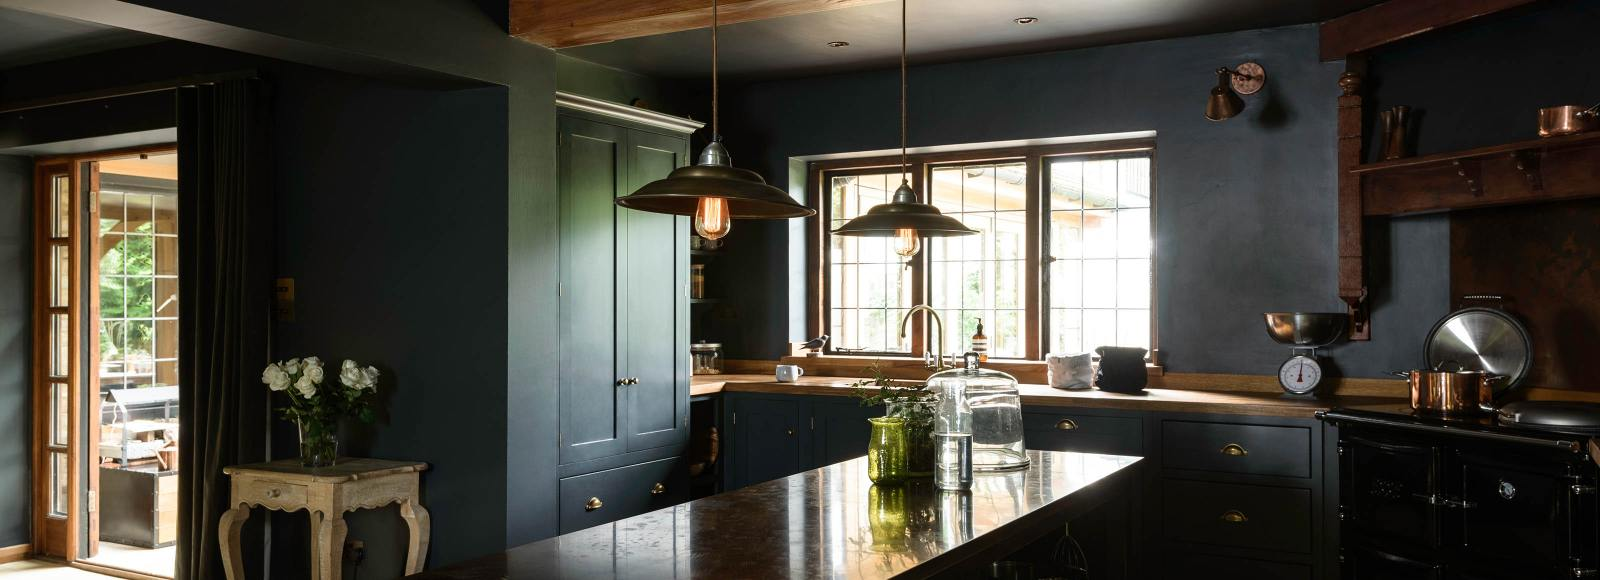 ... Bespoke Kitchens, Bathrooms And Interiors By DeVOL Photo 4 ...